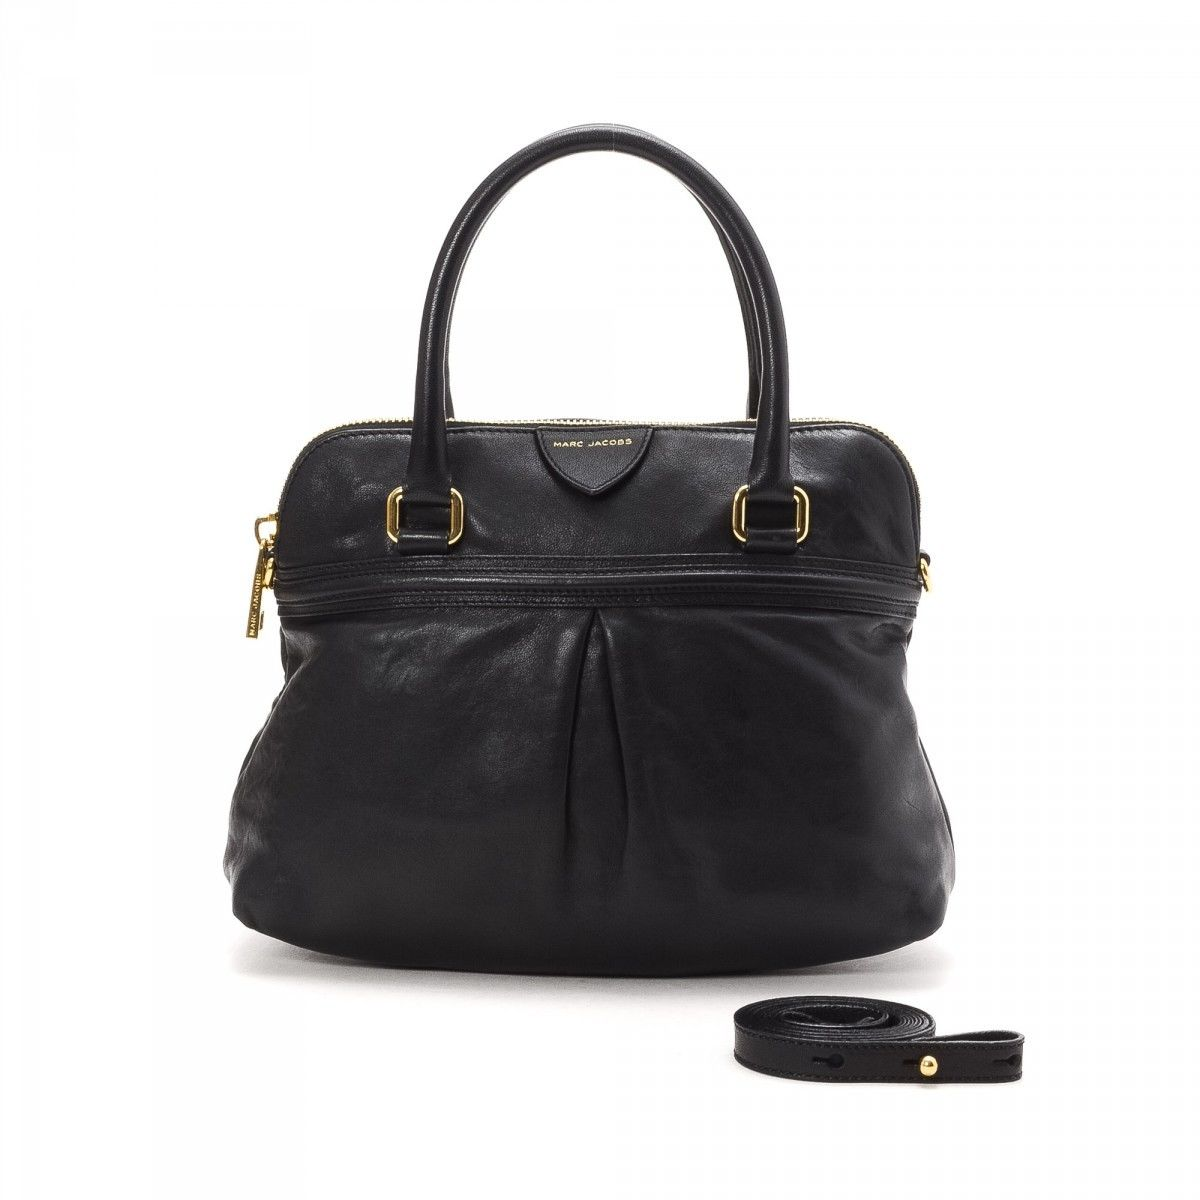 Marc Jacobs Pre-owned - HAND BAG InK28